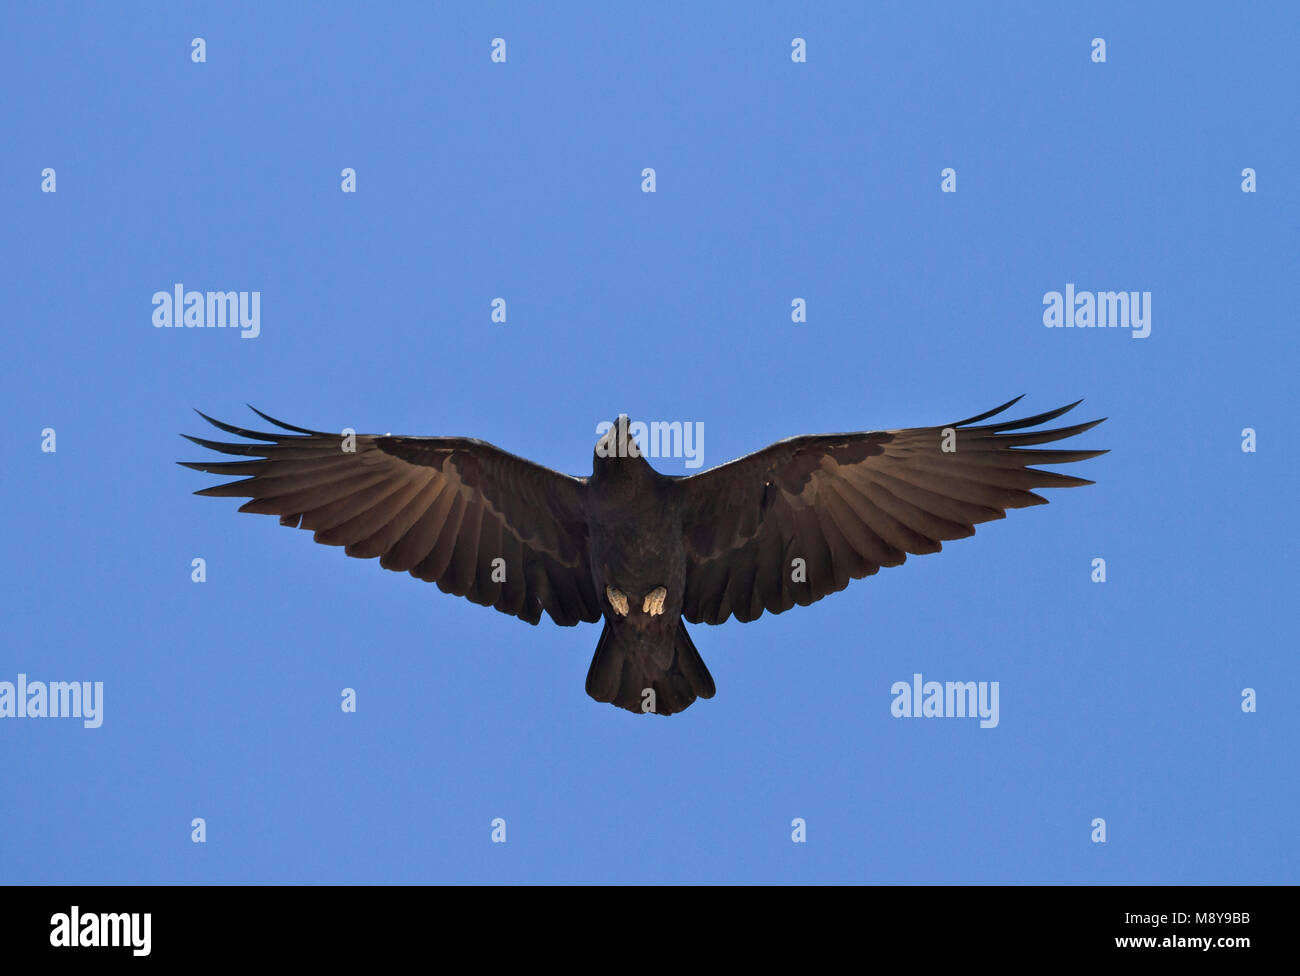 Fan-tailed Raven - Borstenrabe - Corvus rhipidurus, Oman Stock Photo